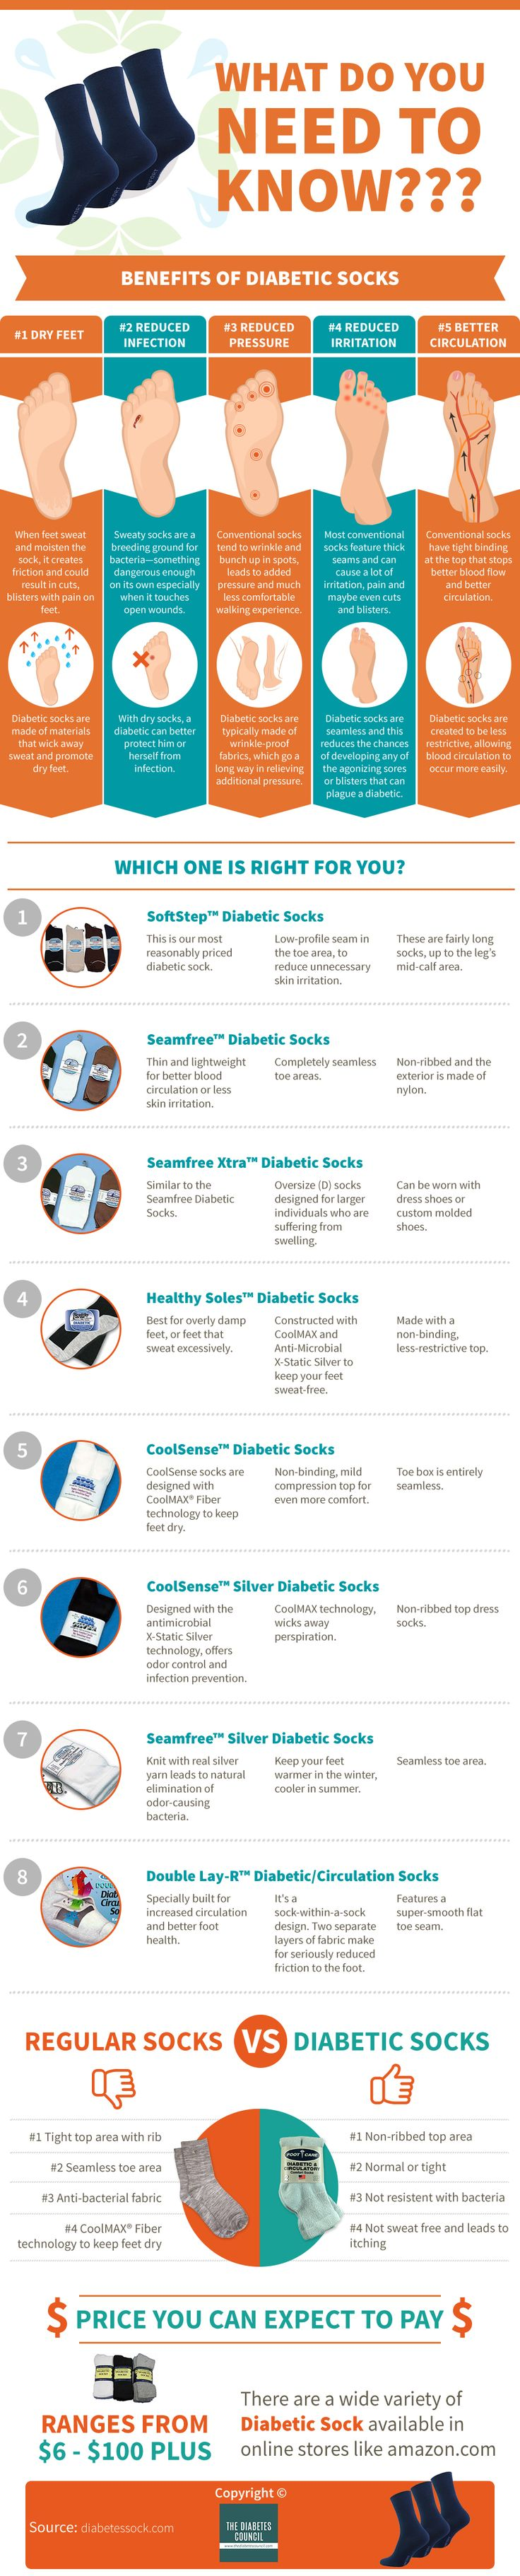 This infographic will teach you everything you need to know about diabetes socks. A diabetic sock is a non-binding and non-elasticized sock which is designed so as to not constrict the foot or leg. Typically sufferers of diabetes are the most common users of this type of sock. Diabetes raises the blood sugar level, which can increase the risk of foot ulcers. #diabetes #diabetessocks #diabeticsocks #infographic #socks